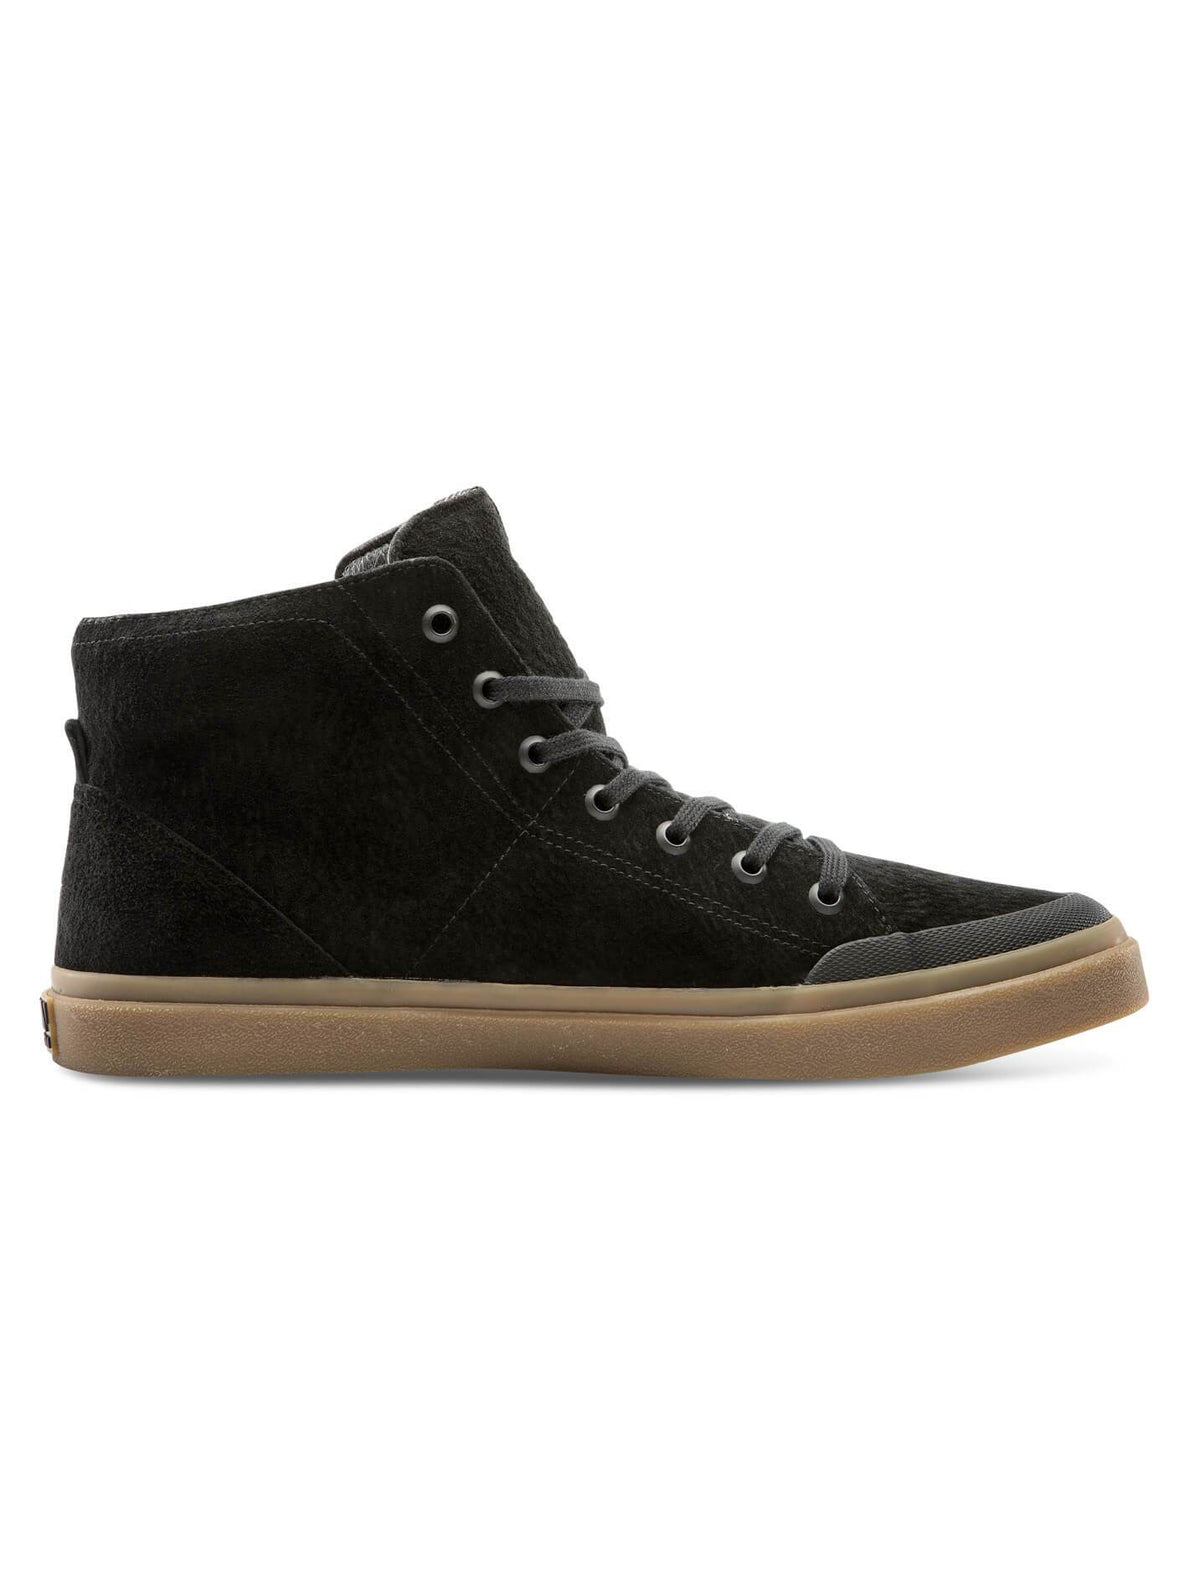 Hi Fi Lx Shoes - New Black